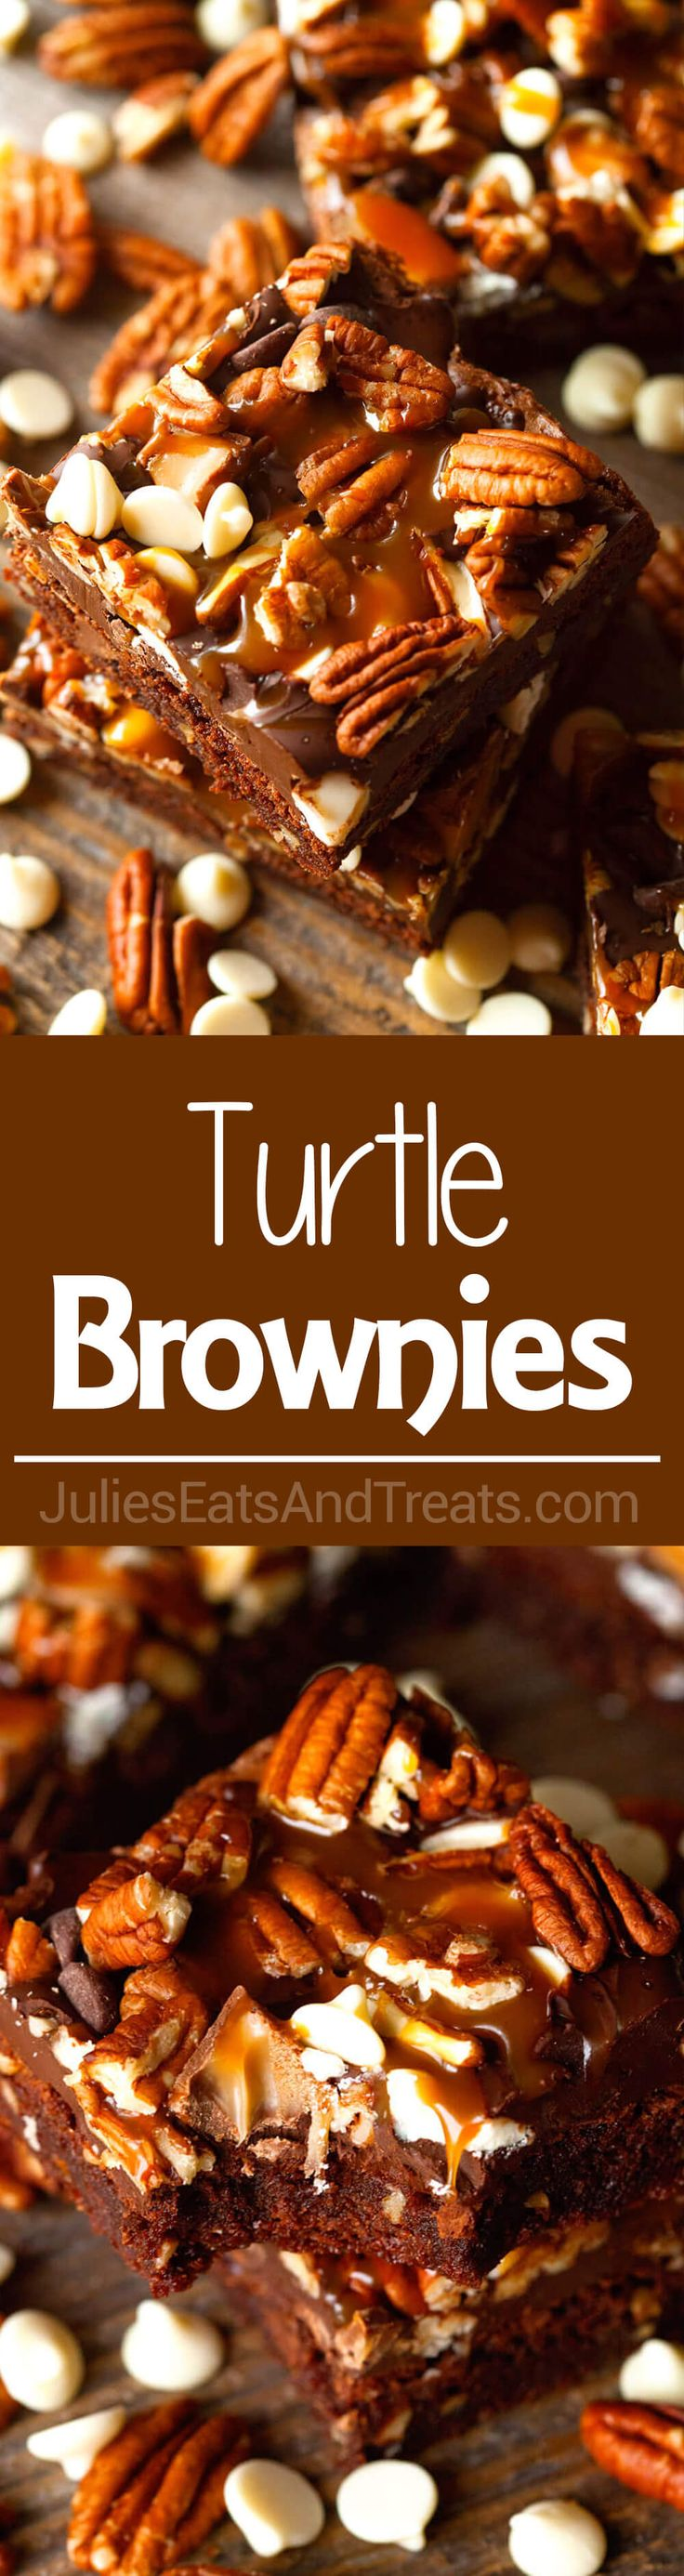 These Turtle Brownies have it all. Fudgy Brownies packed with Chocolate Chips…